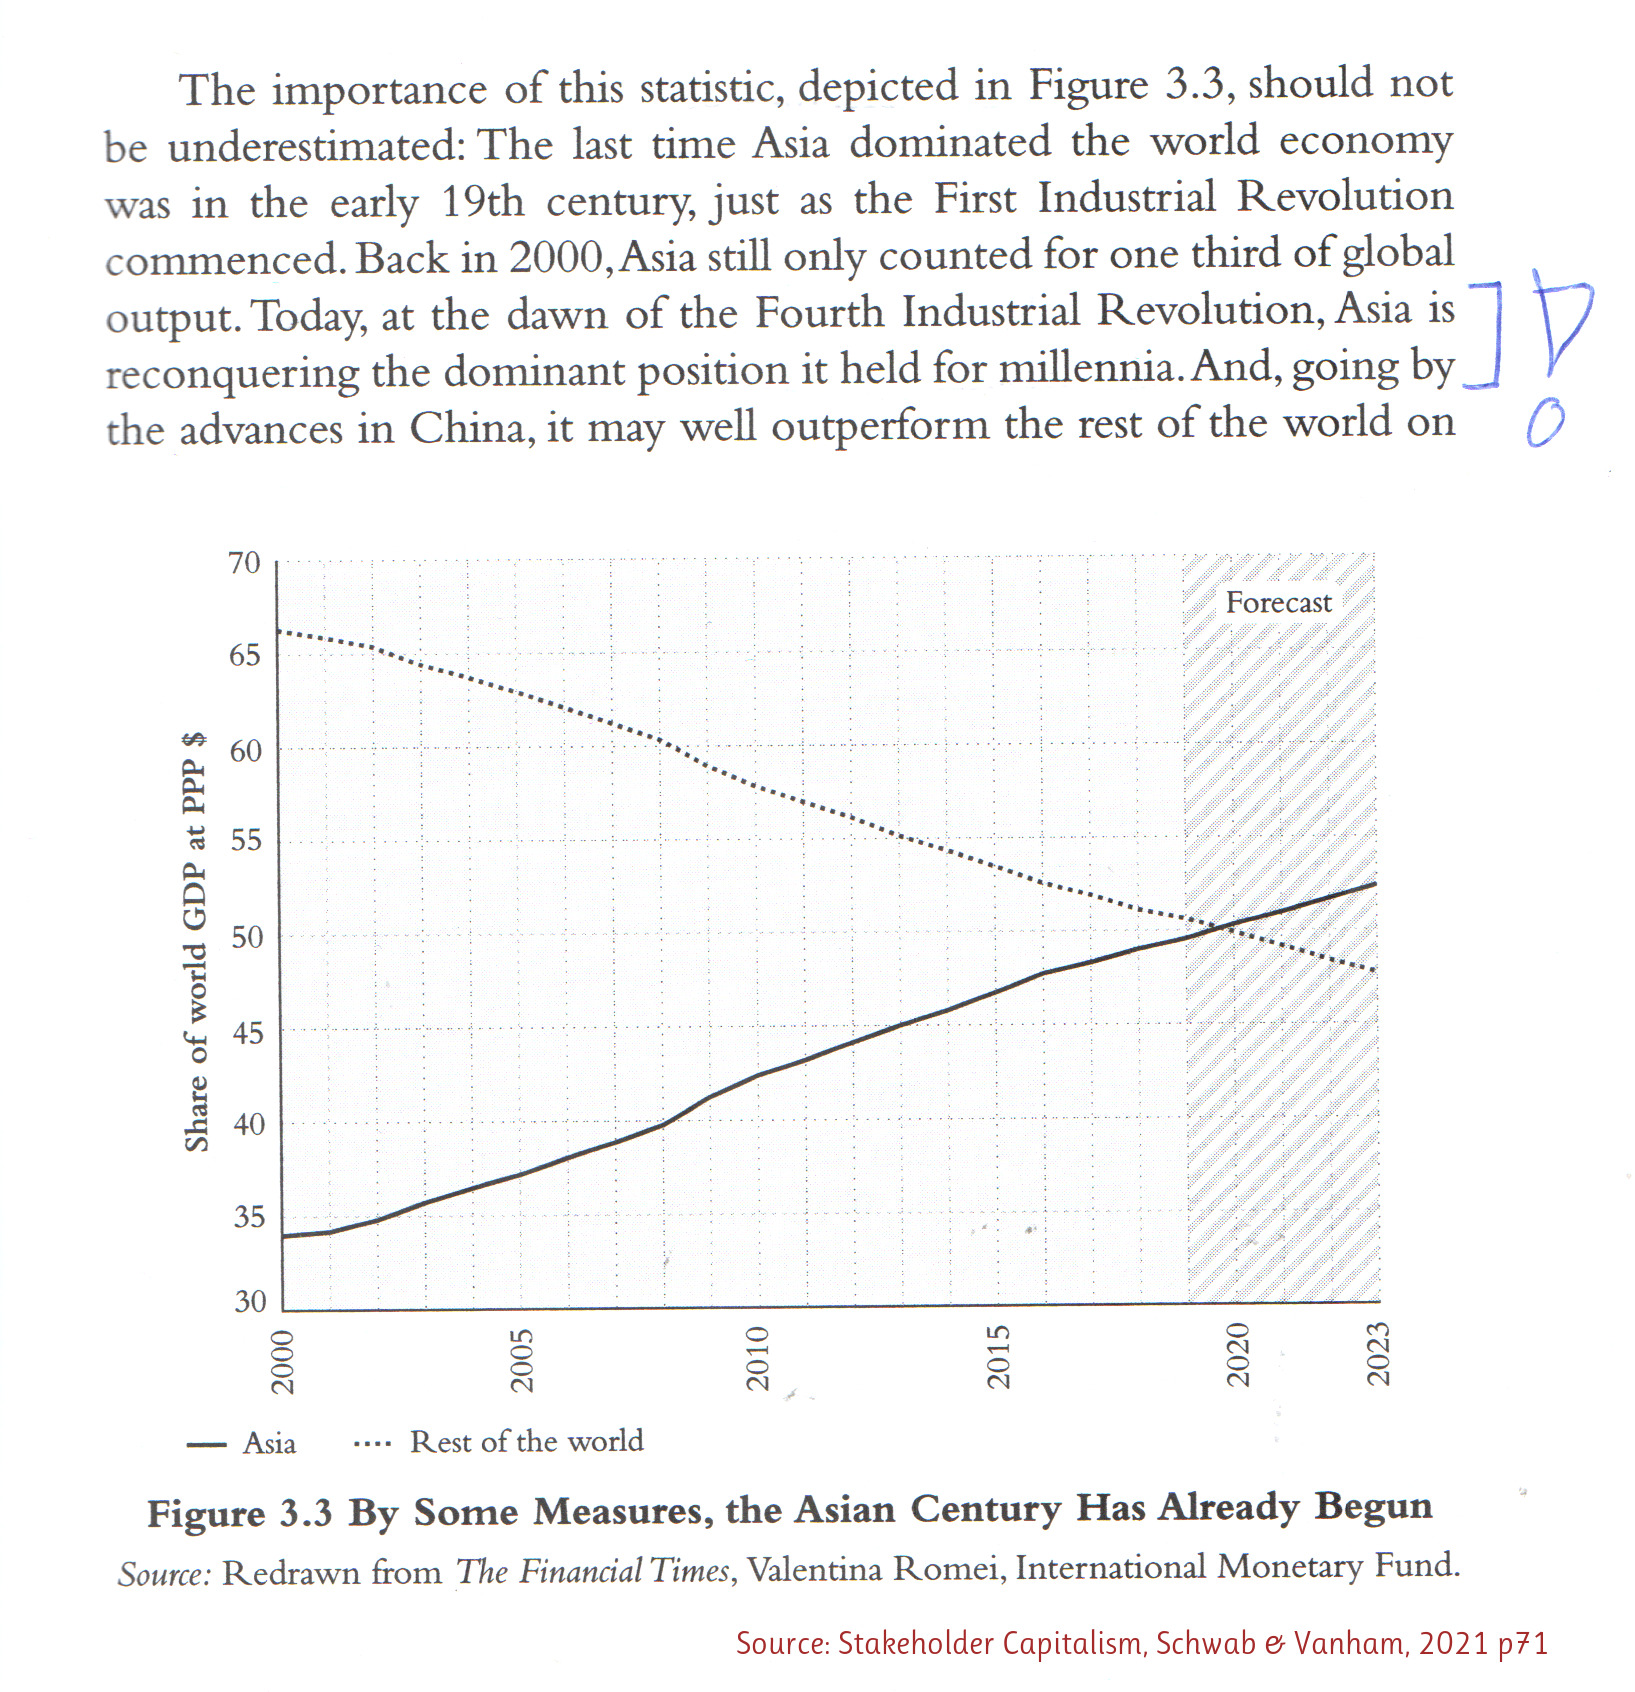 Fig.3.3 from the book, showing crossing lines: Asia up, rest of the world down, crossing point in 2021.